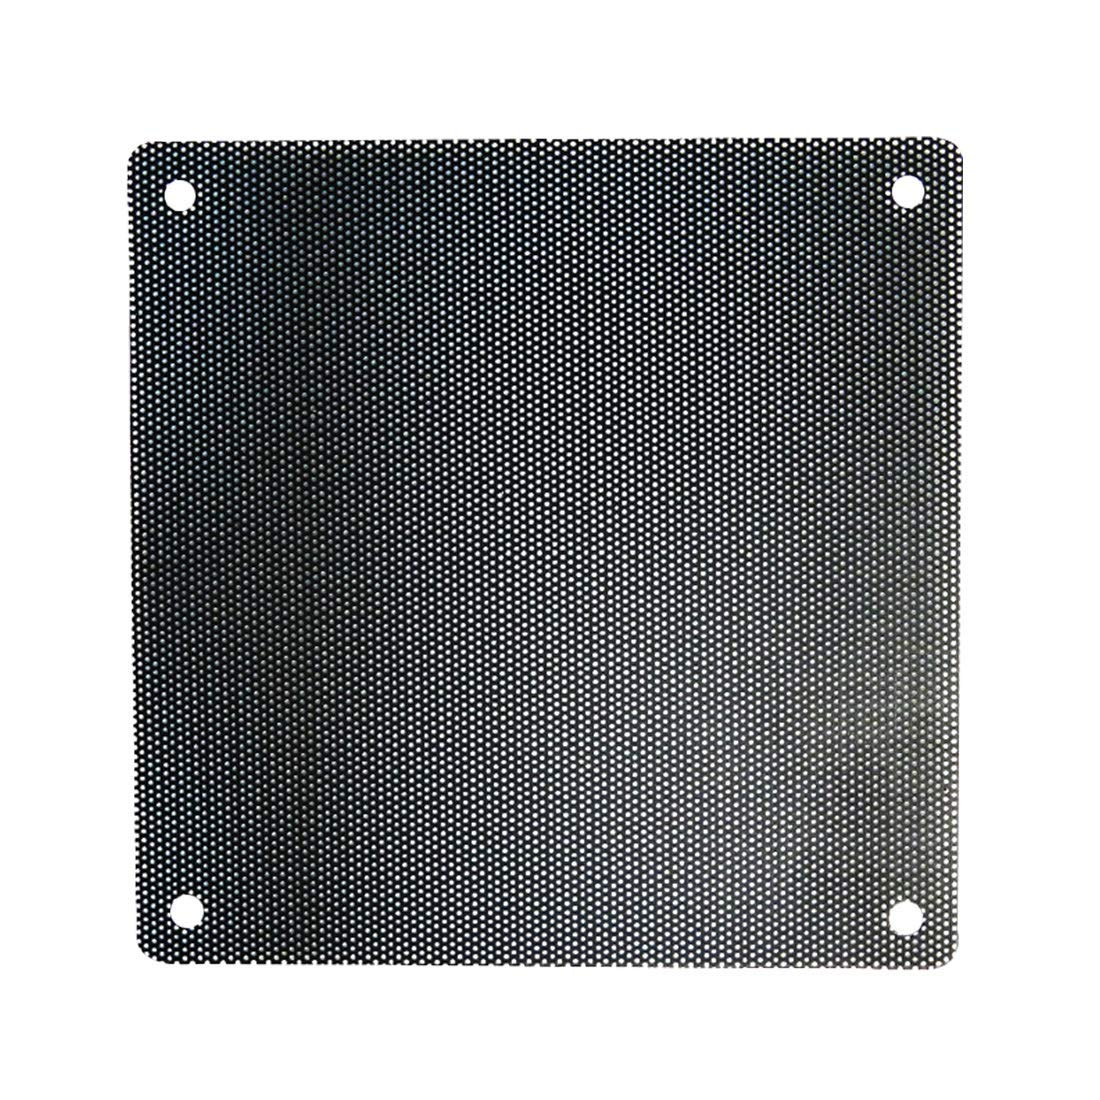 Yevison Computer Cooling Fan Filter PVC 120mm140mm PC Fan Case Dust Filter Strainer Cuttable Dustproof Mesh High Quality by Yevison